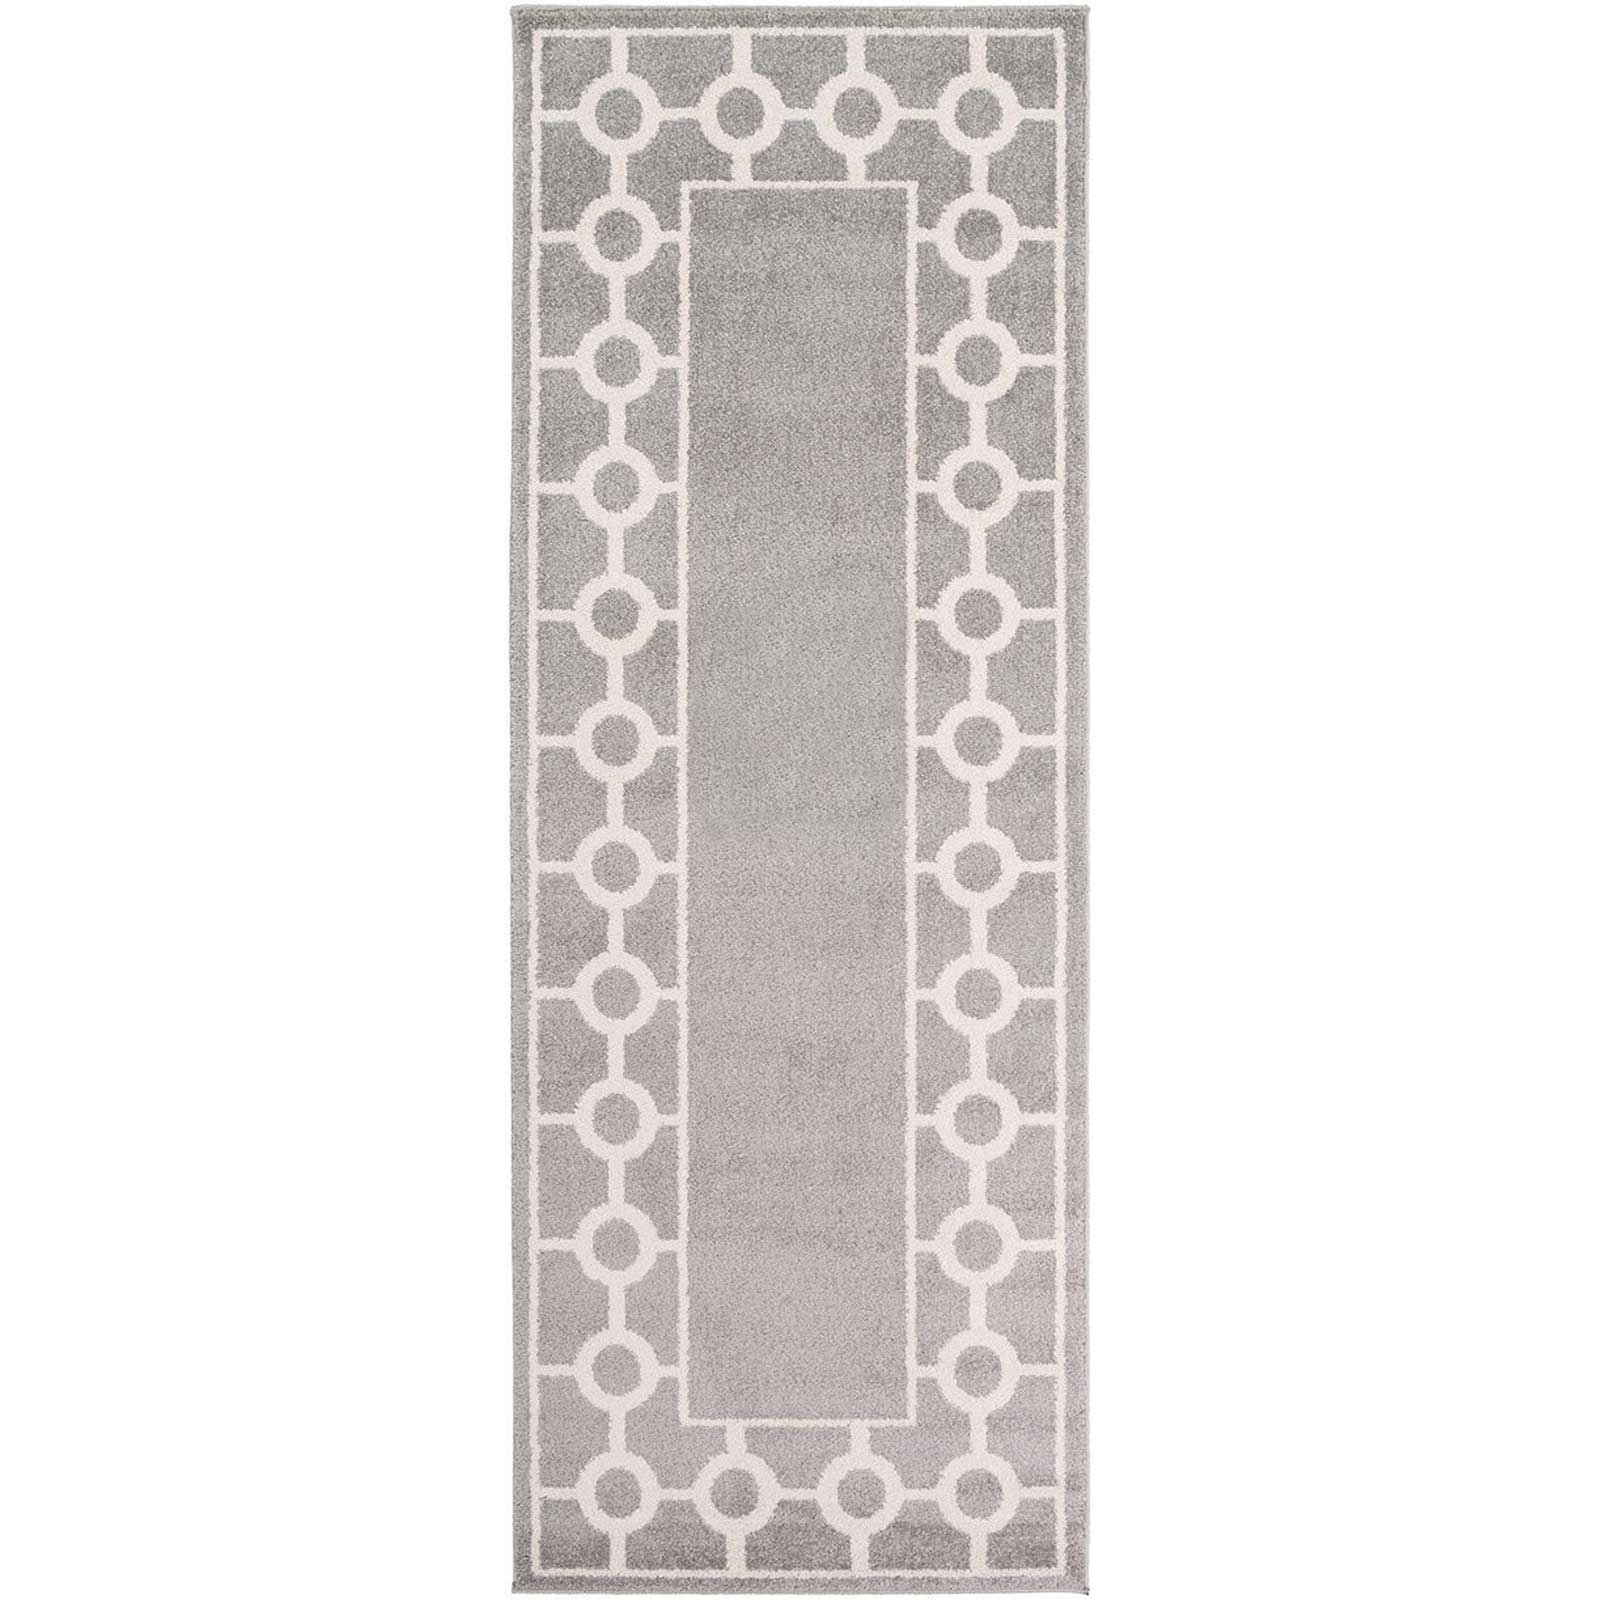 Horizon Border Gray/Ivory Runner Rug